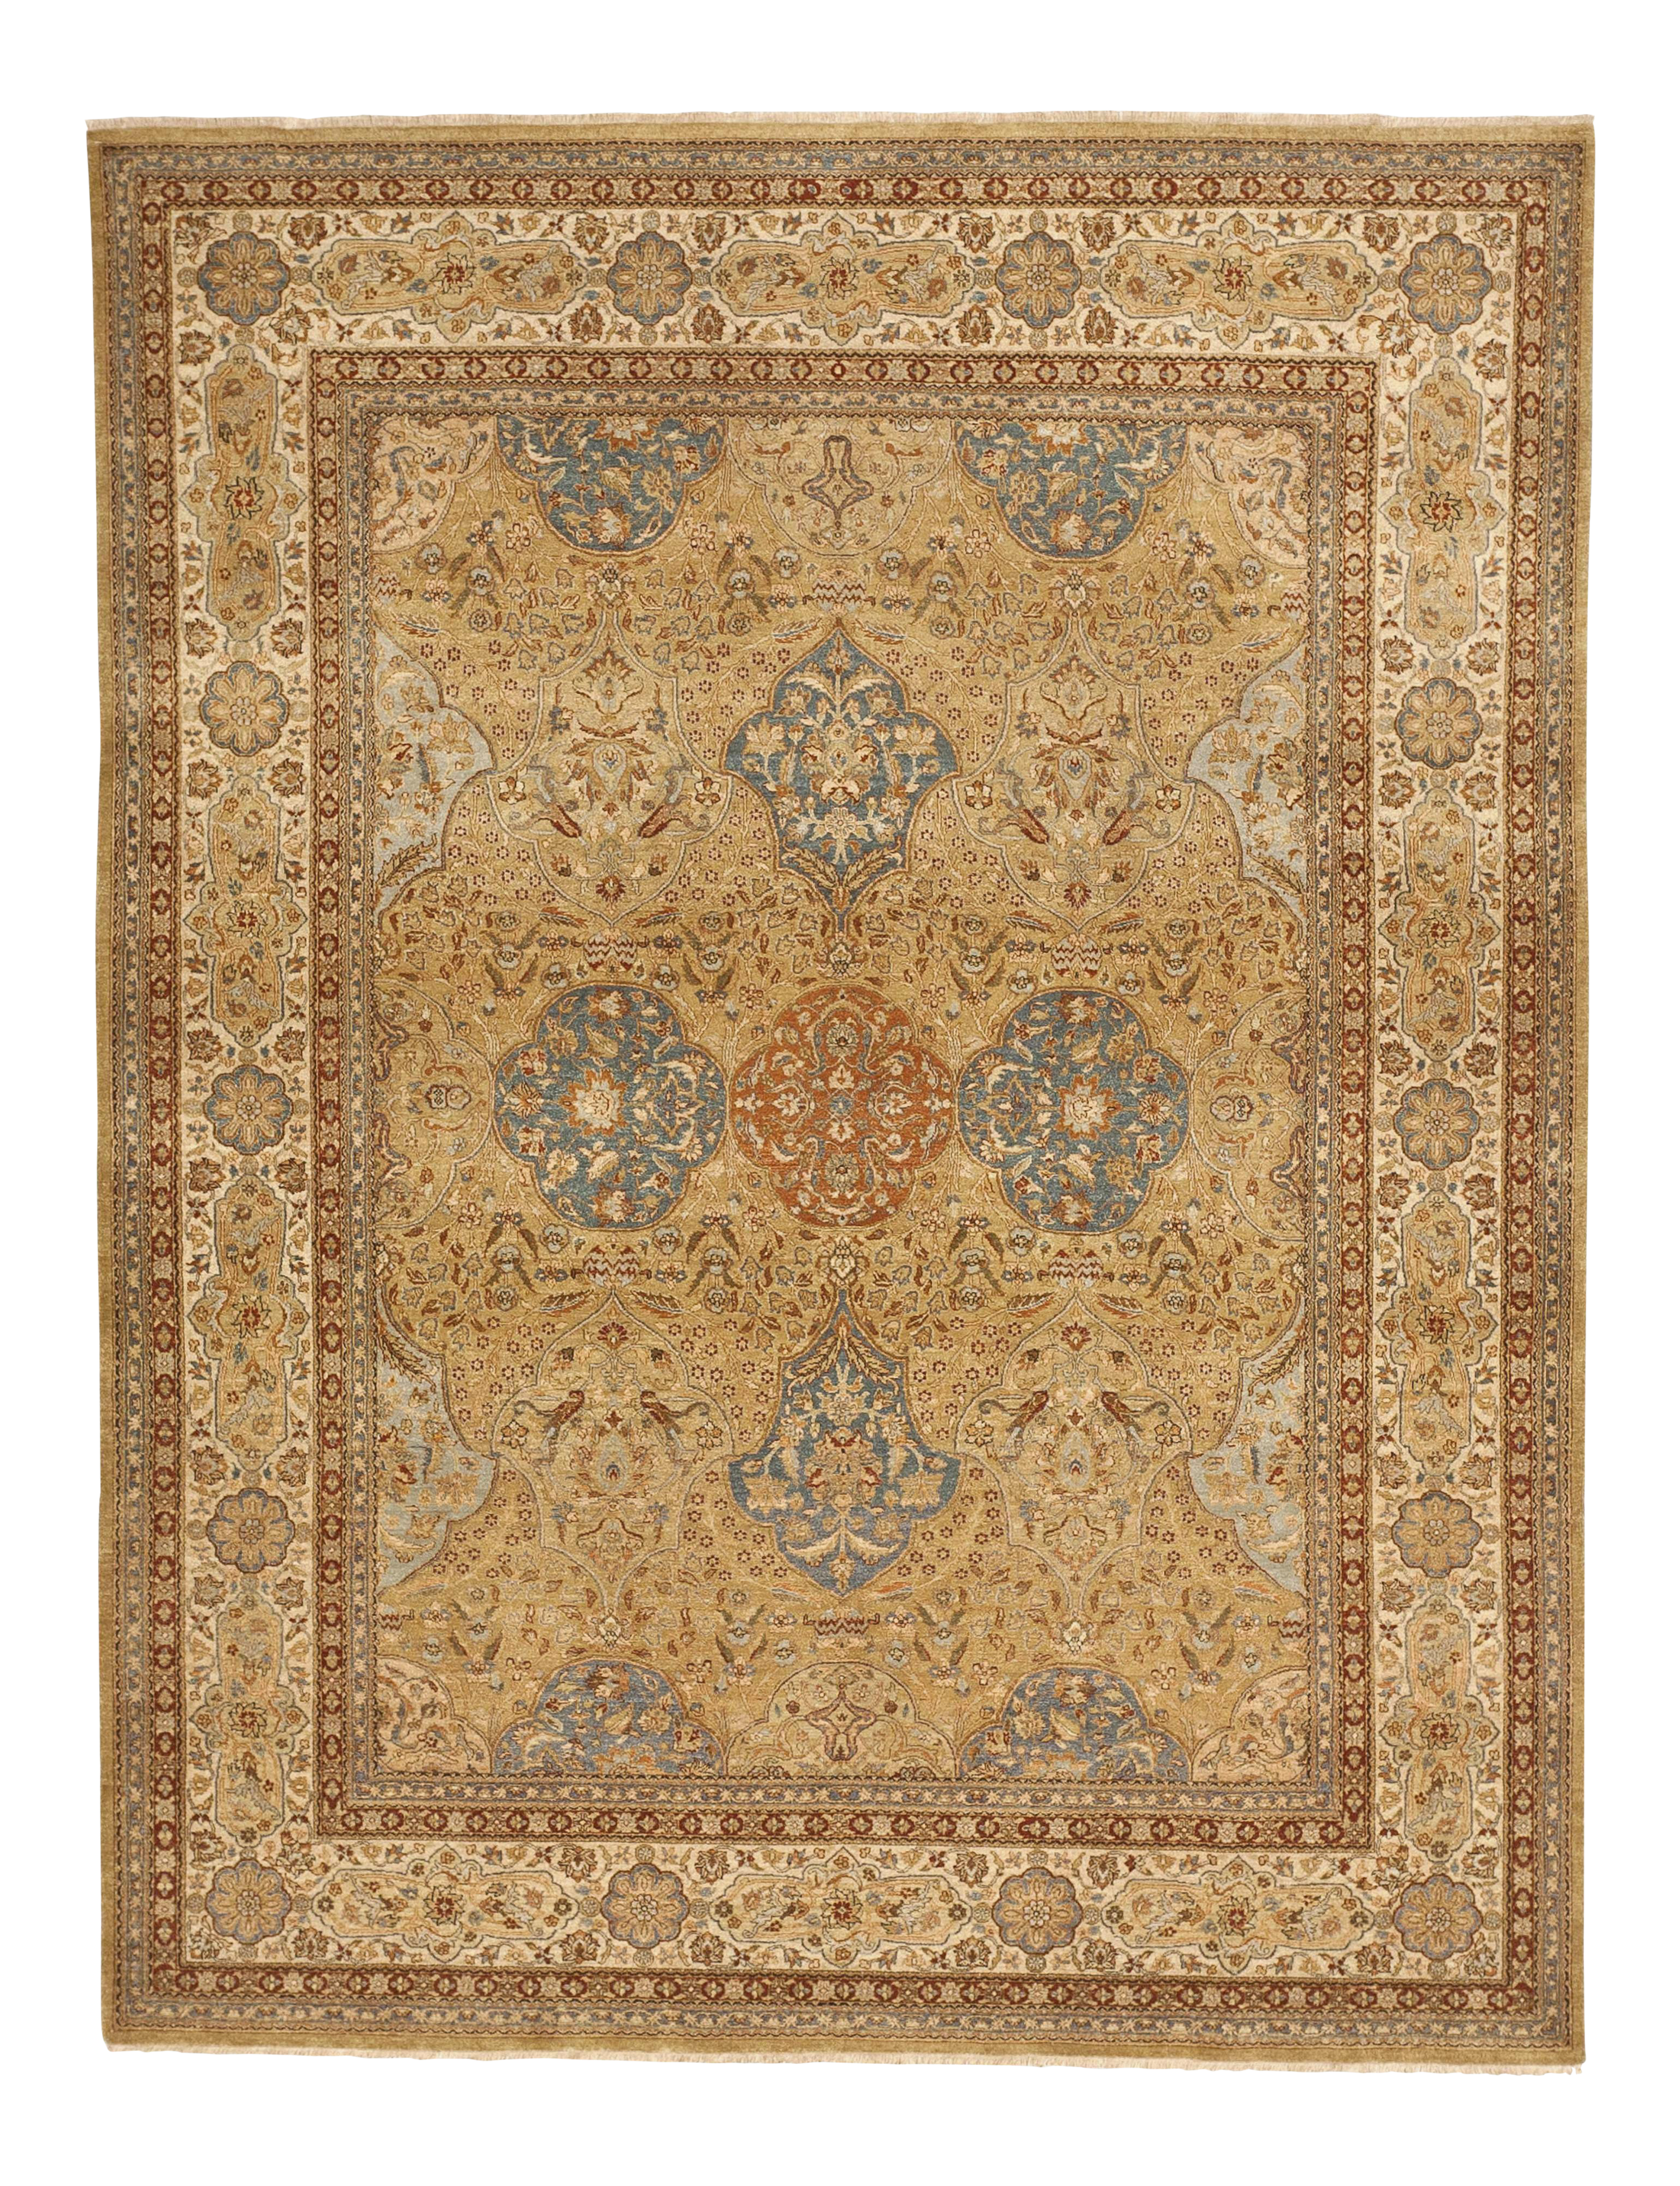 Hand Made Indian Rug 7 11 X 9 In 2019 Affordable